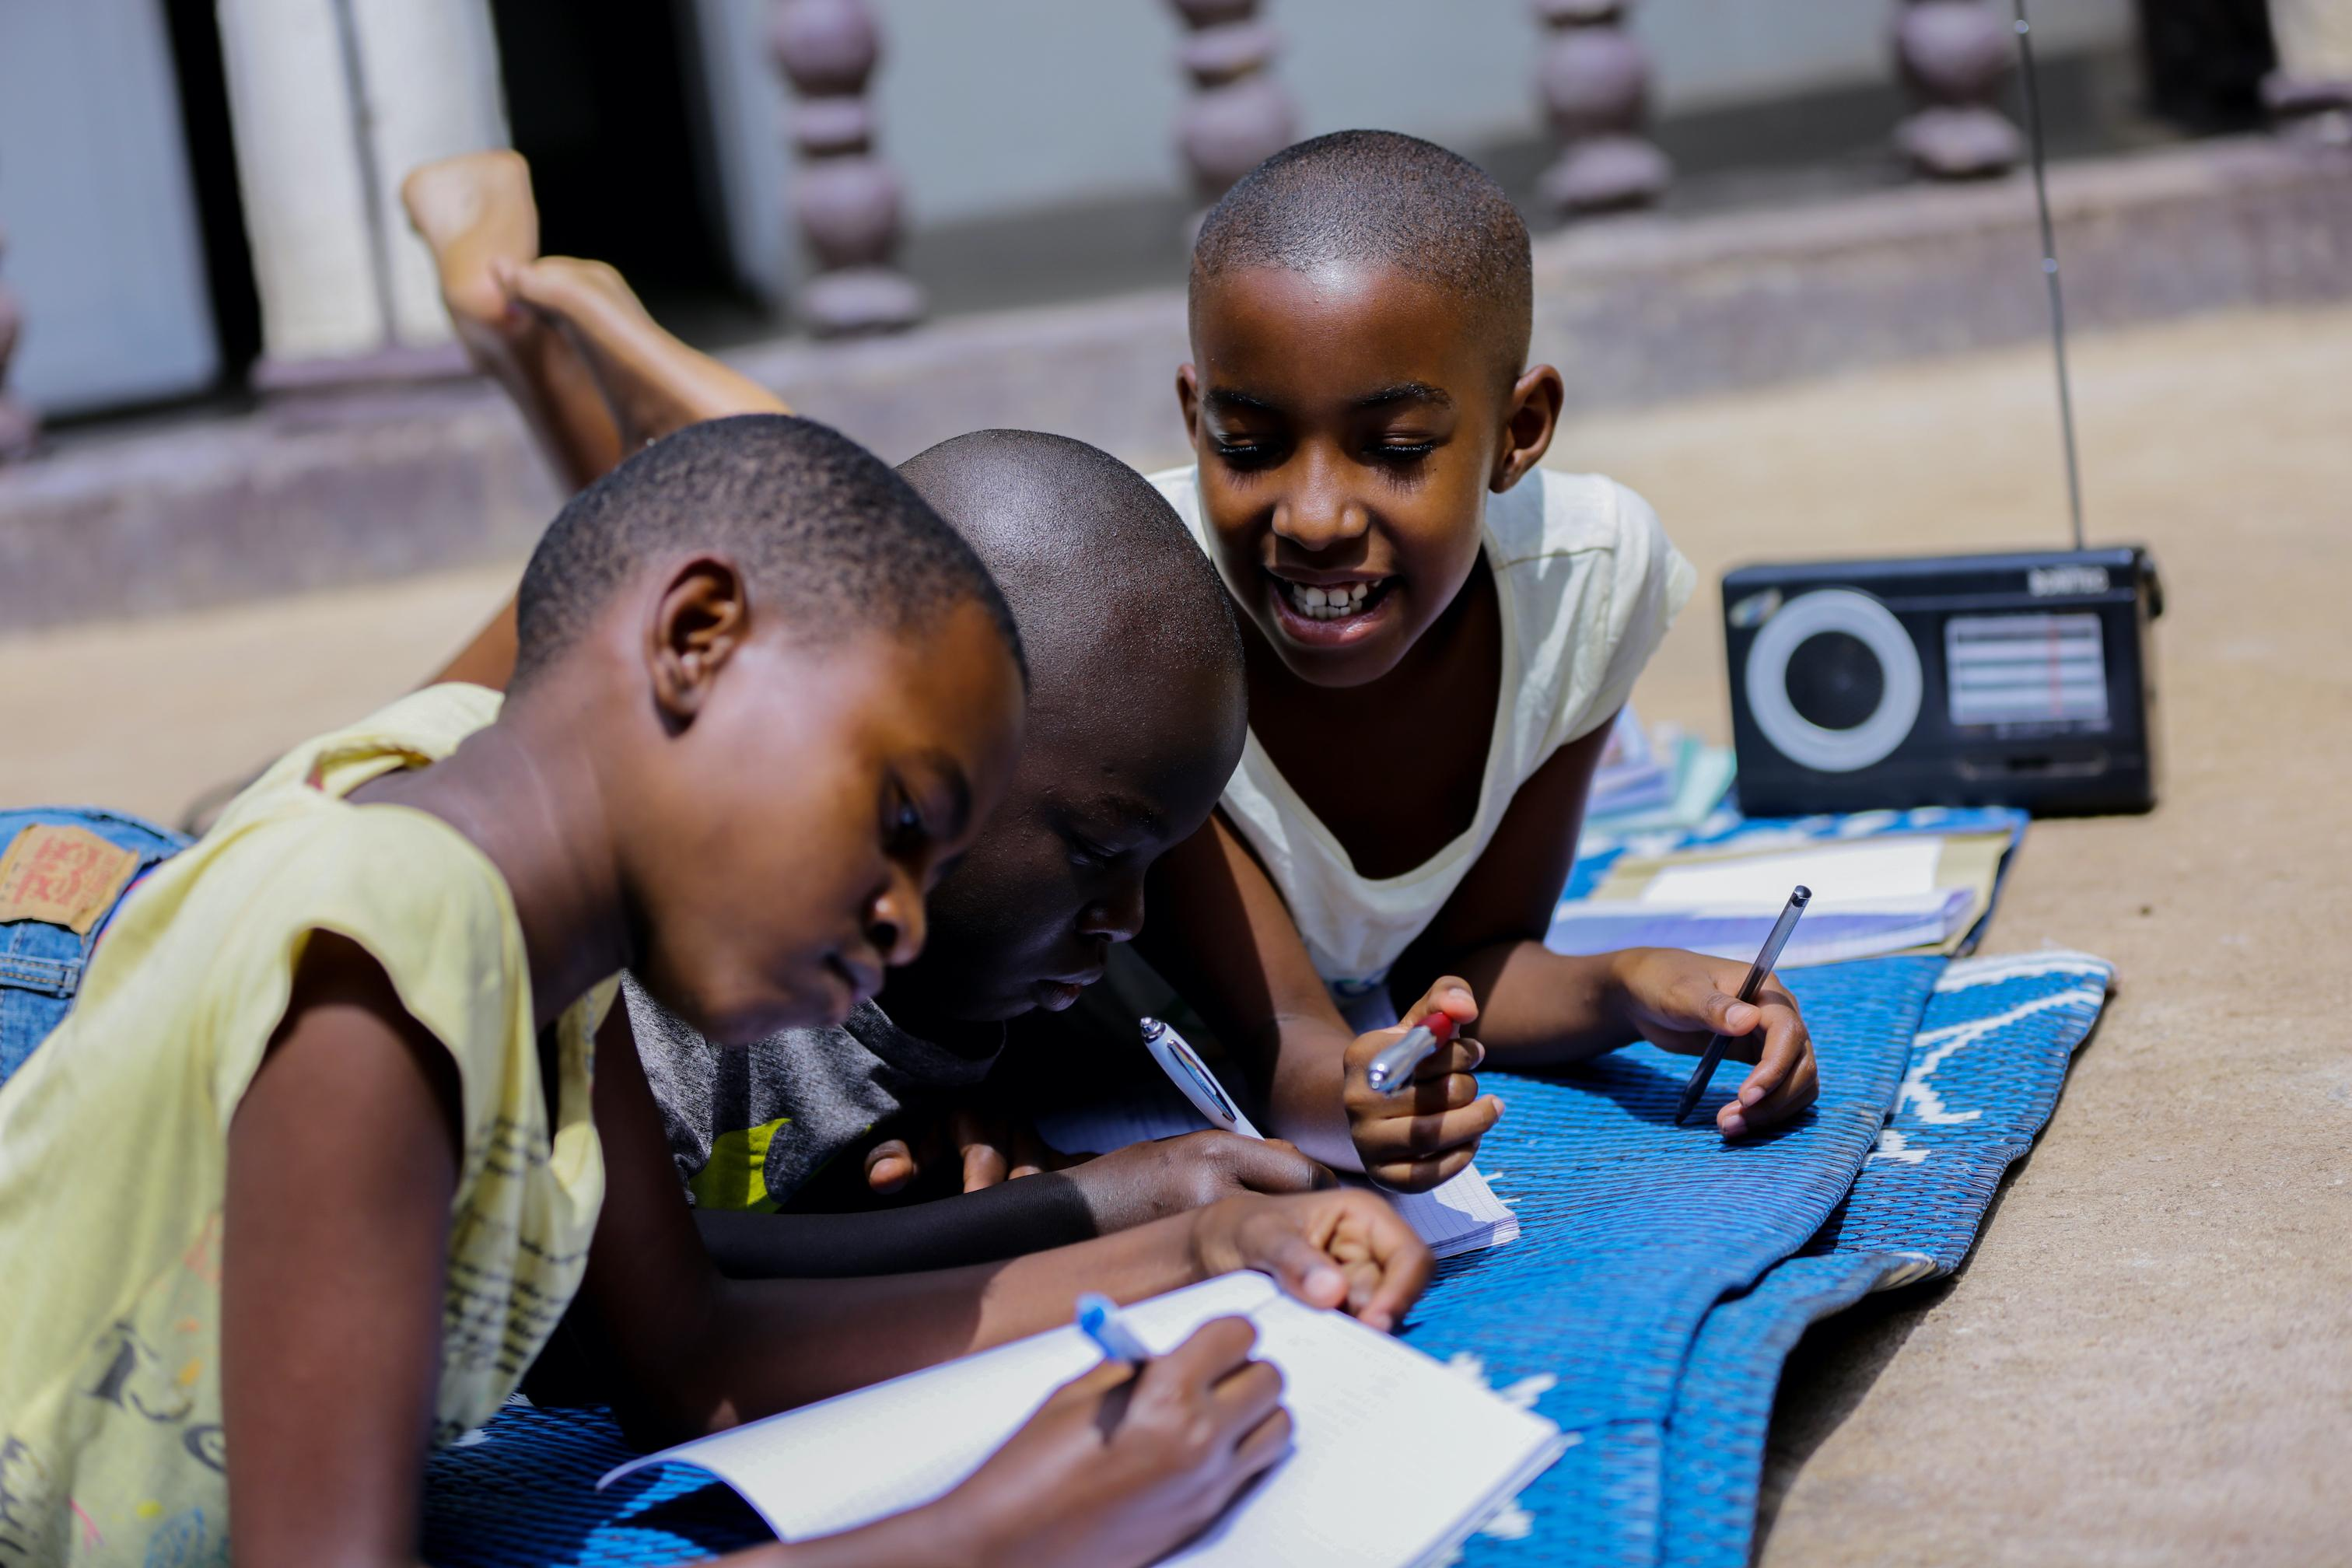 Rwanda's students listen to radio lessons at home while their schools are closed due to COVID-19.